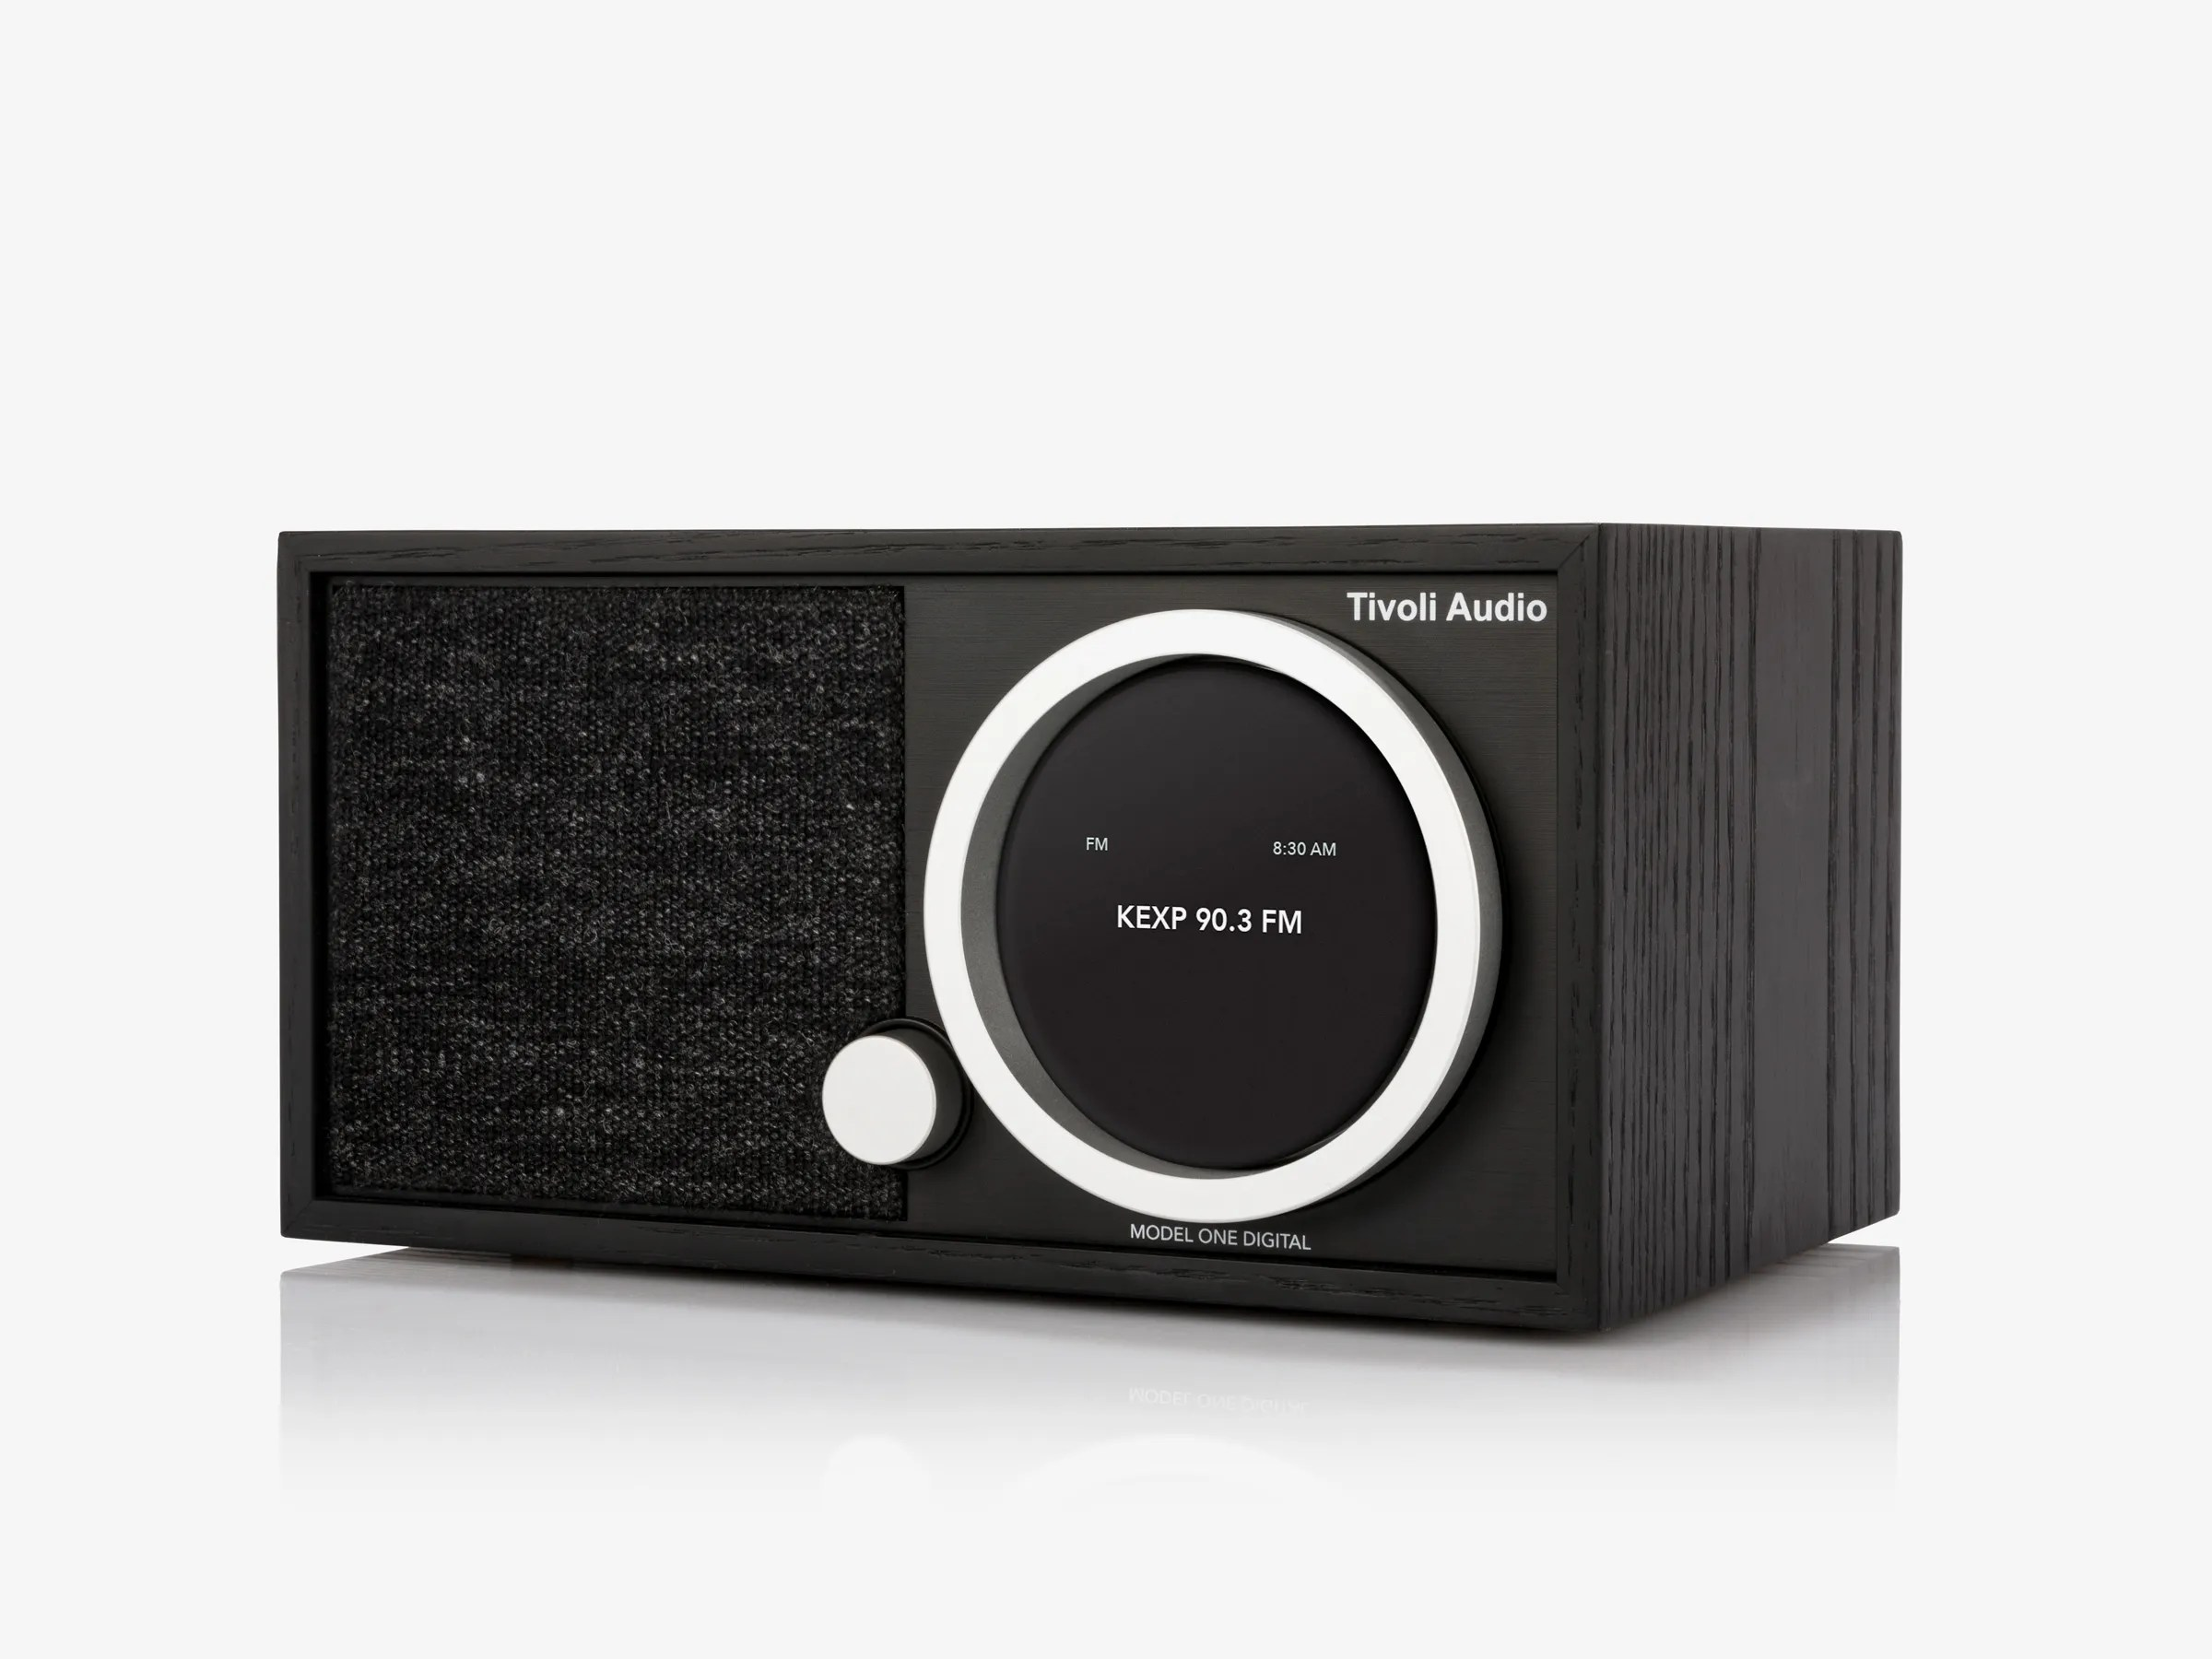 Tivoli Model One Digital Review  The classic table top radio gets     WiredThis digital refresh of the classic Tivoli Model One radio pumps out a  lot of dBs with surprisingly low distortion  Small footprint